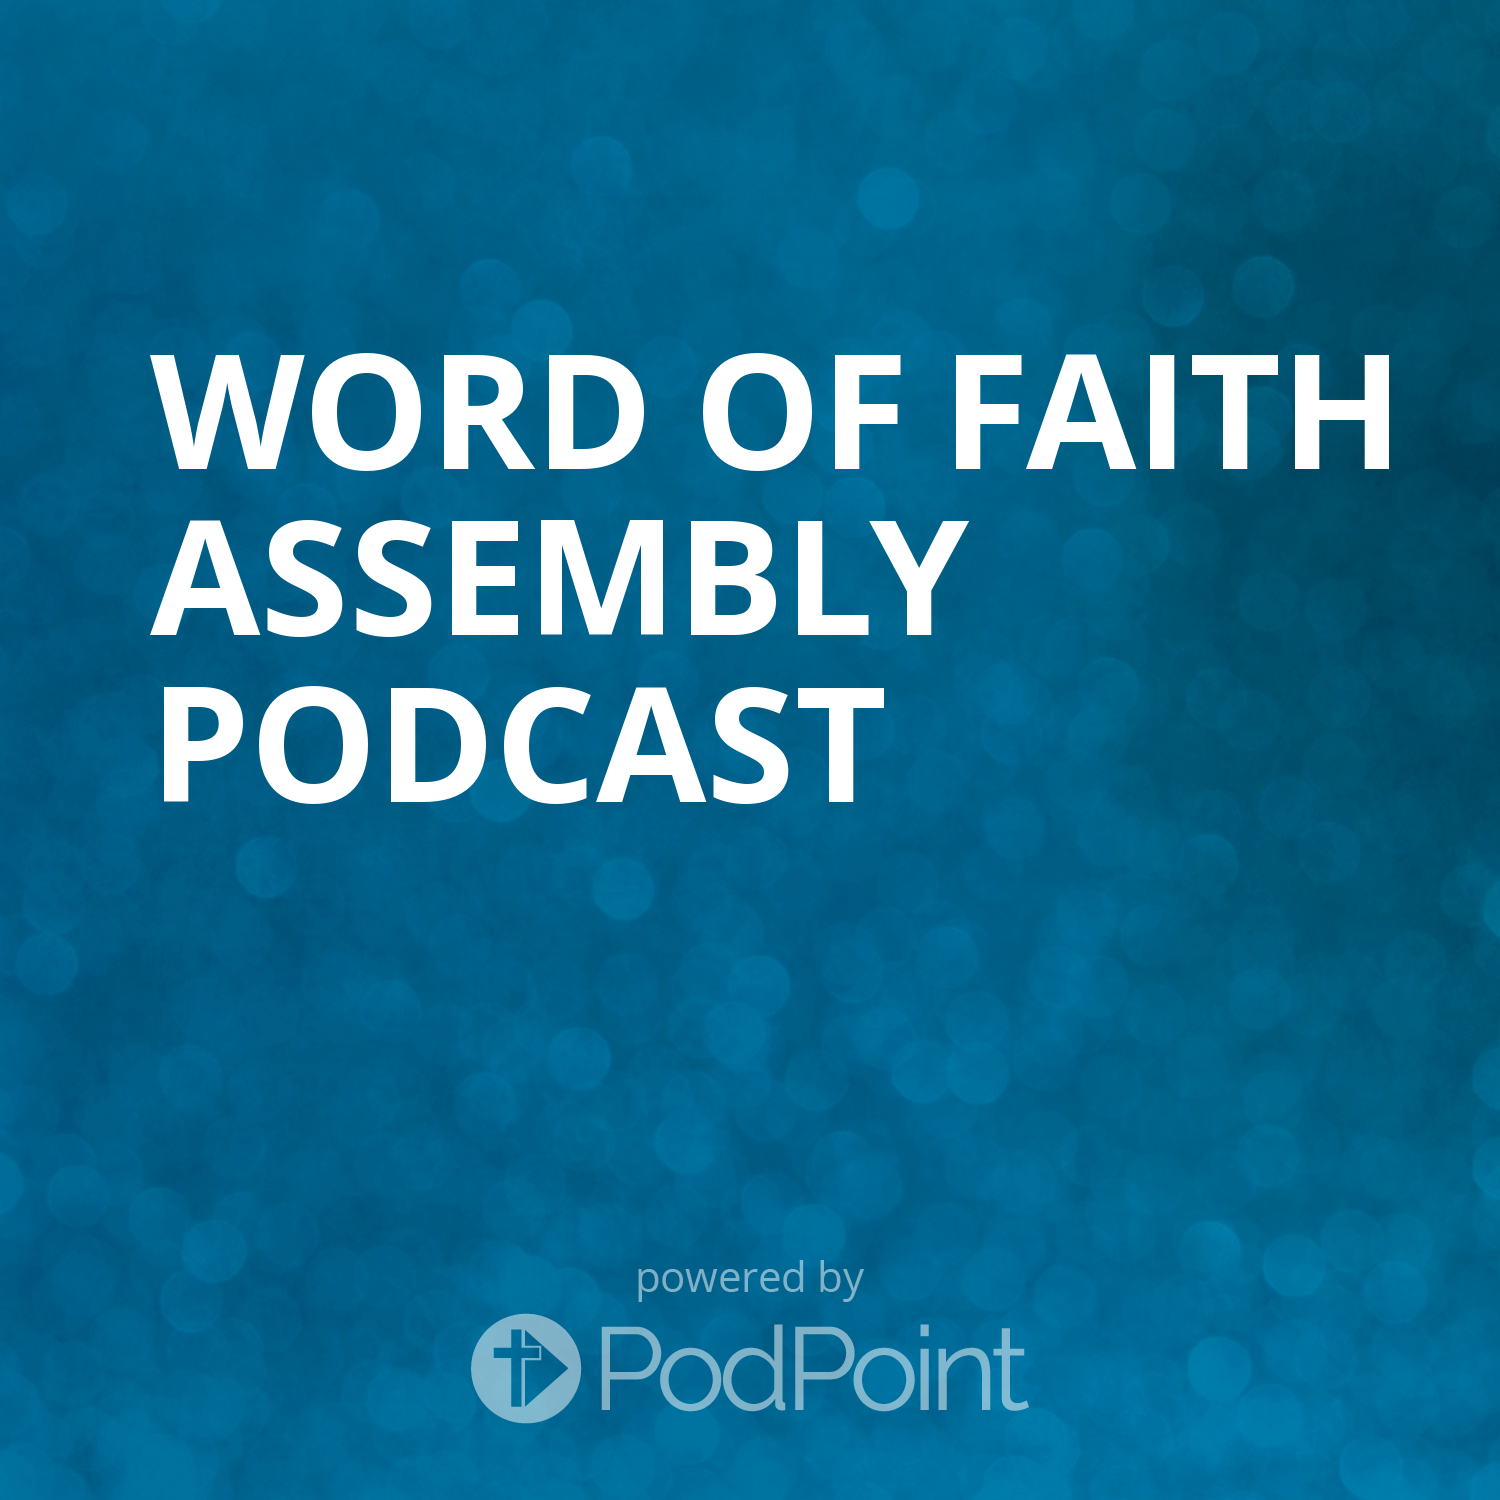 Word of Faith Assembly Podcast